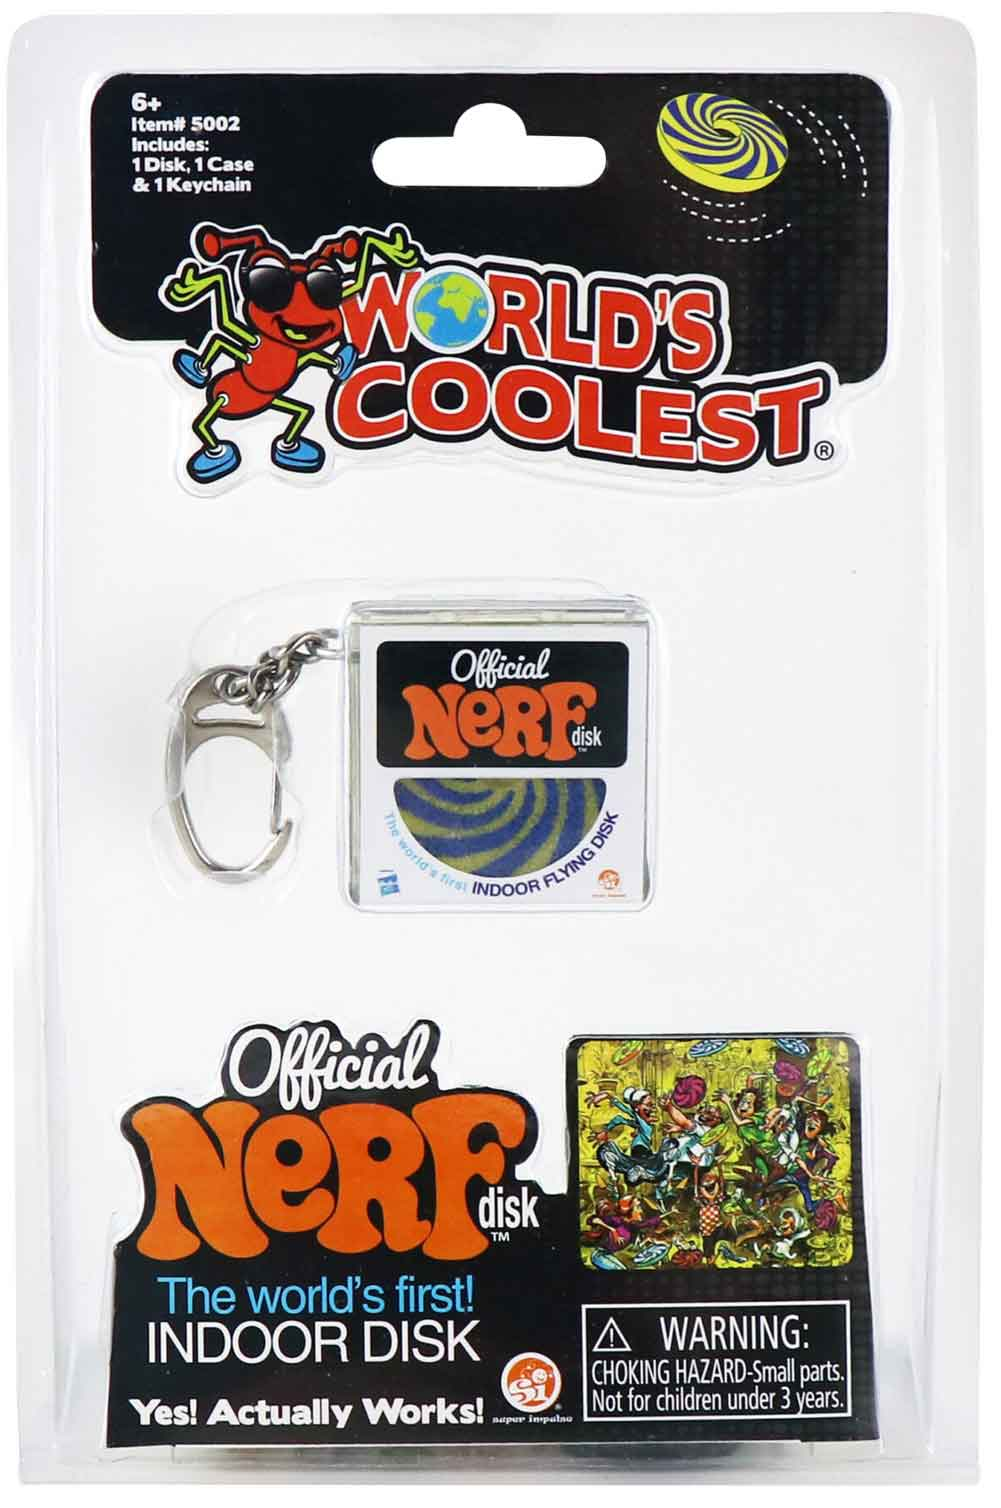 World's Coolest Official Nerf Disk